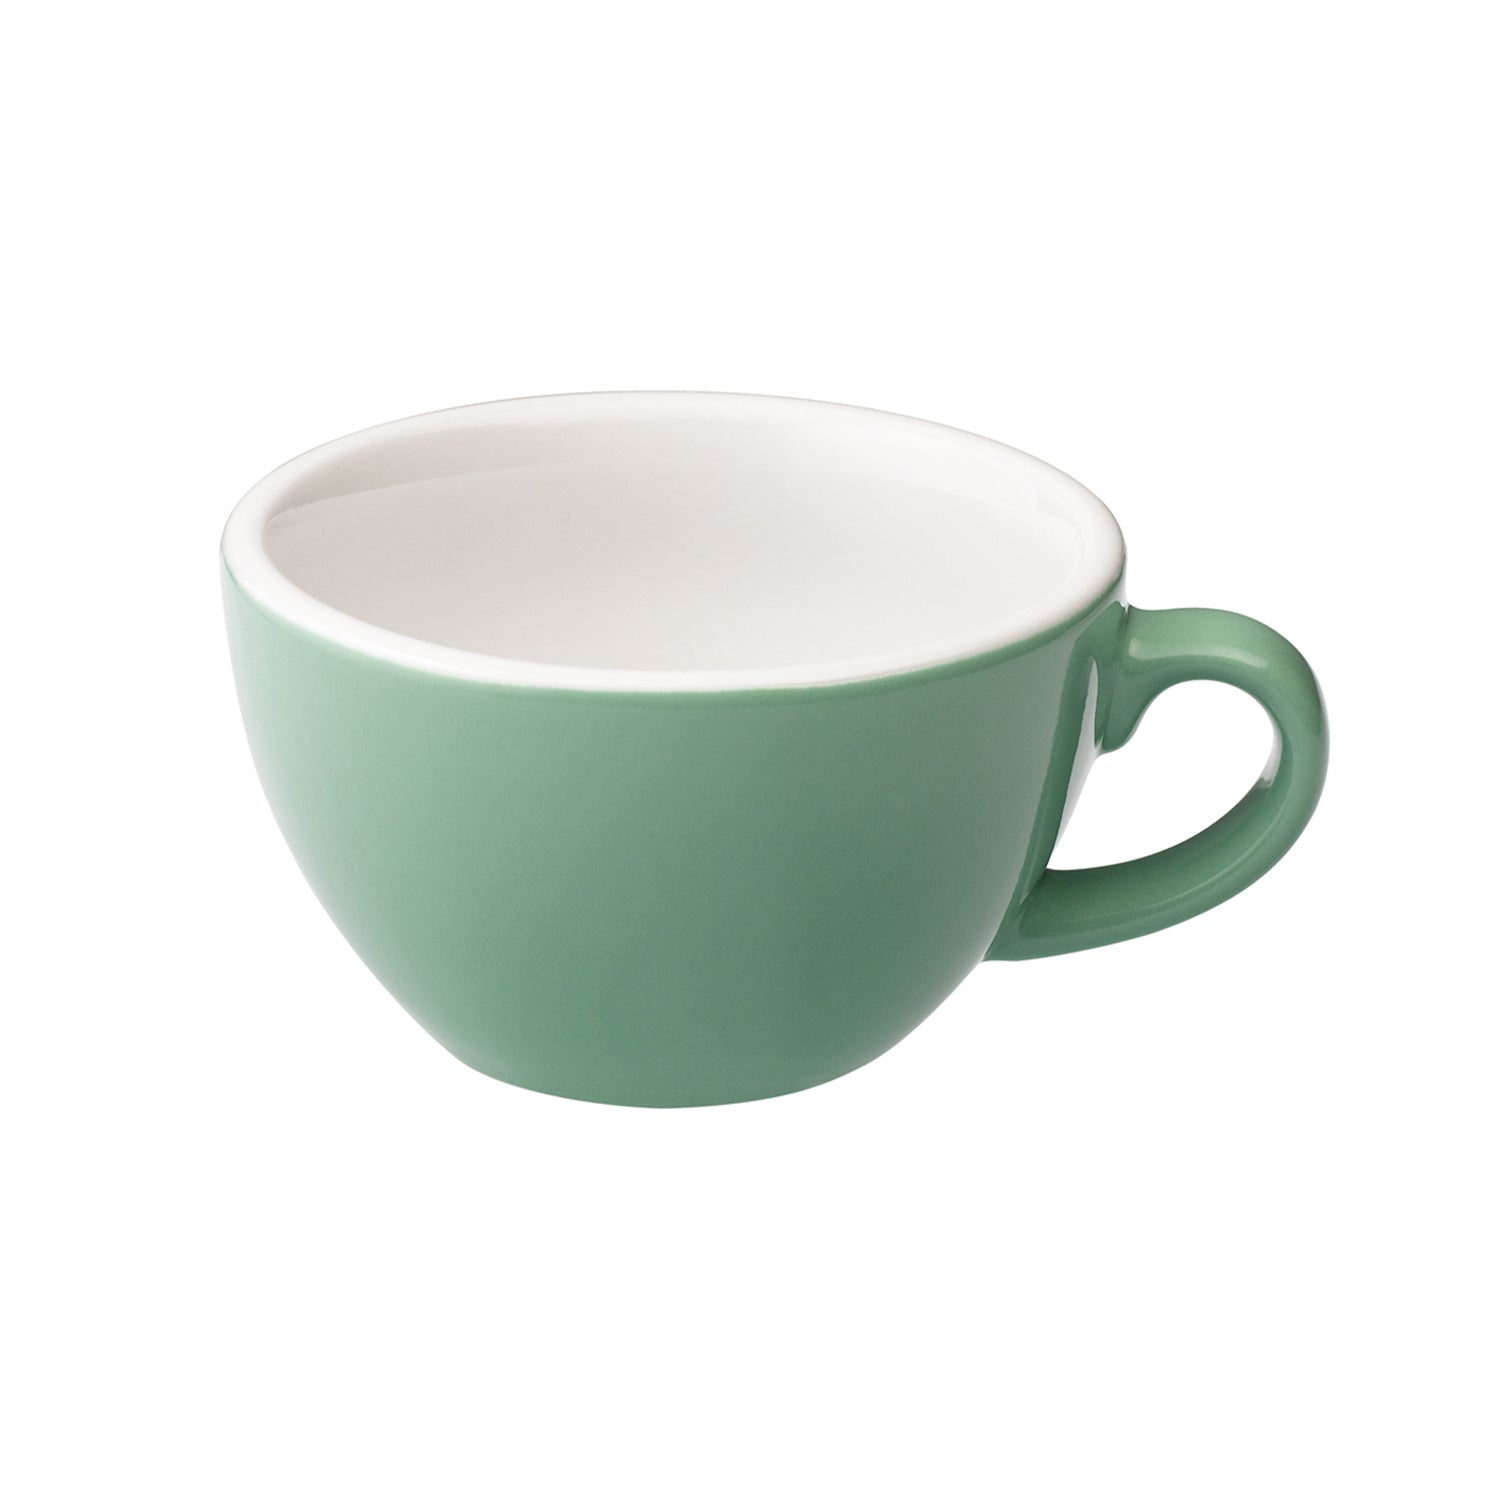 Loveramics Egg Cappuccino Cup (Mint) 200ml